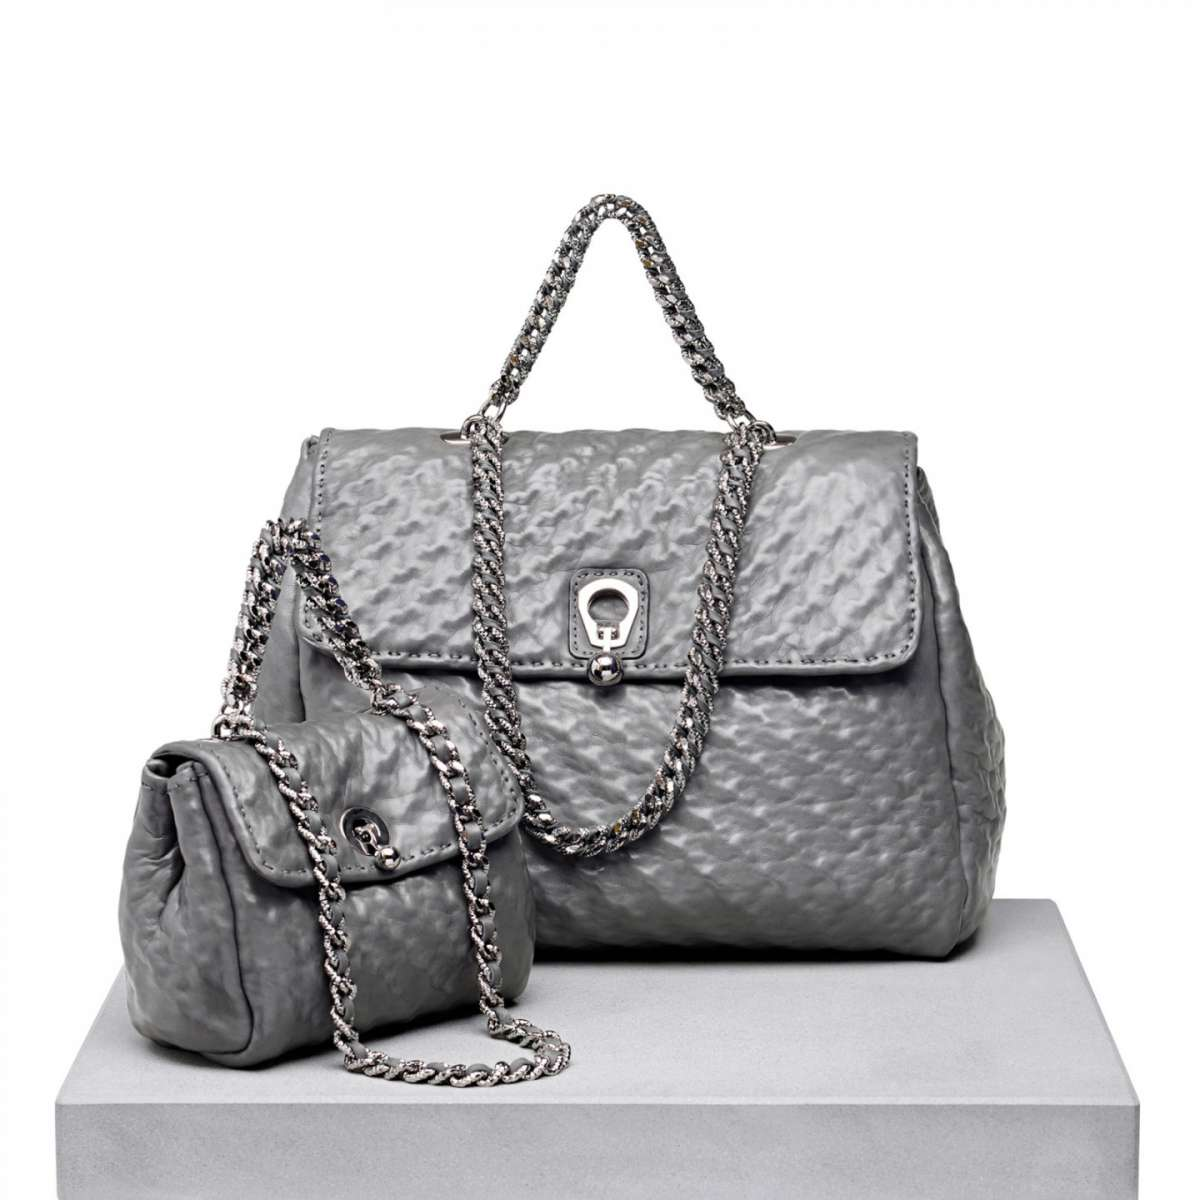 Handbag in pelle grigia